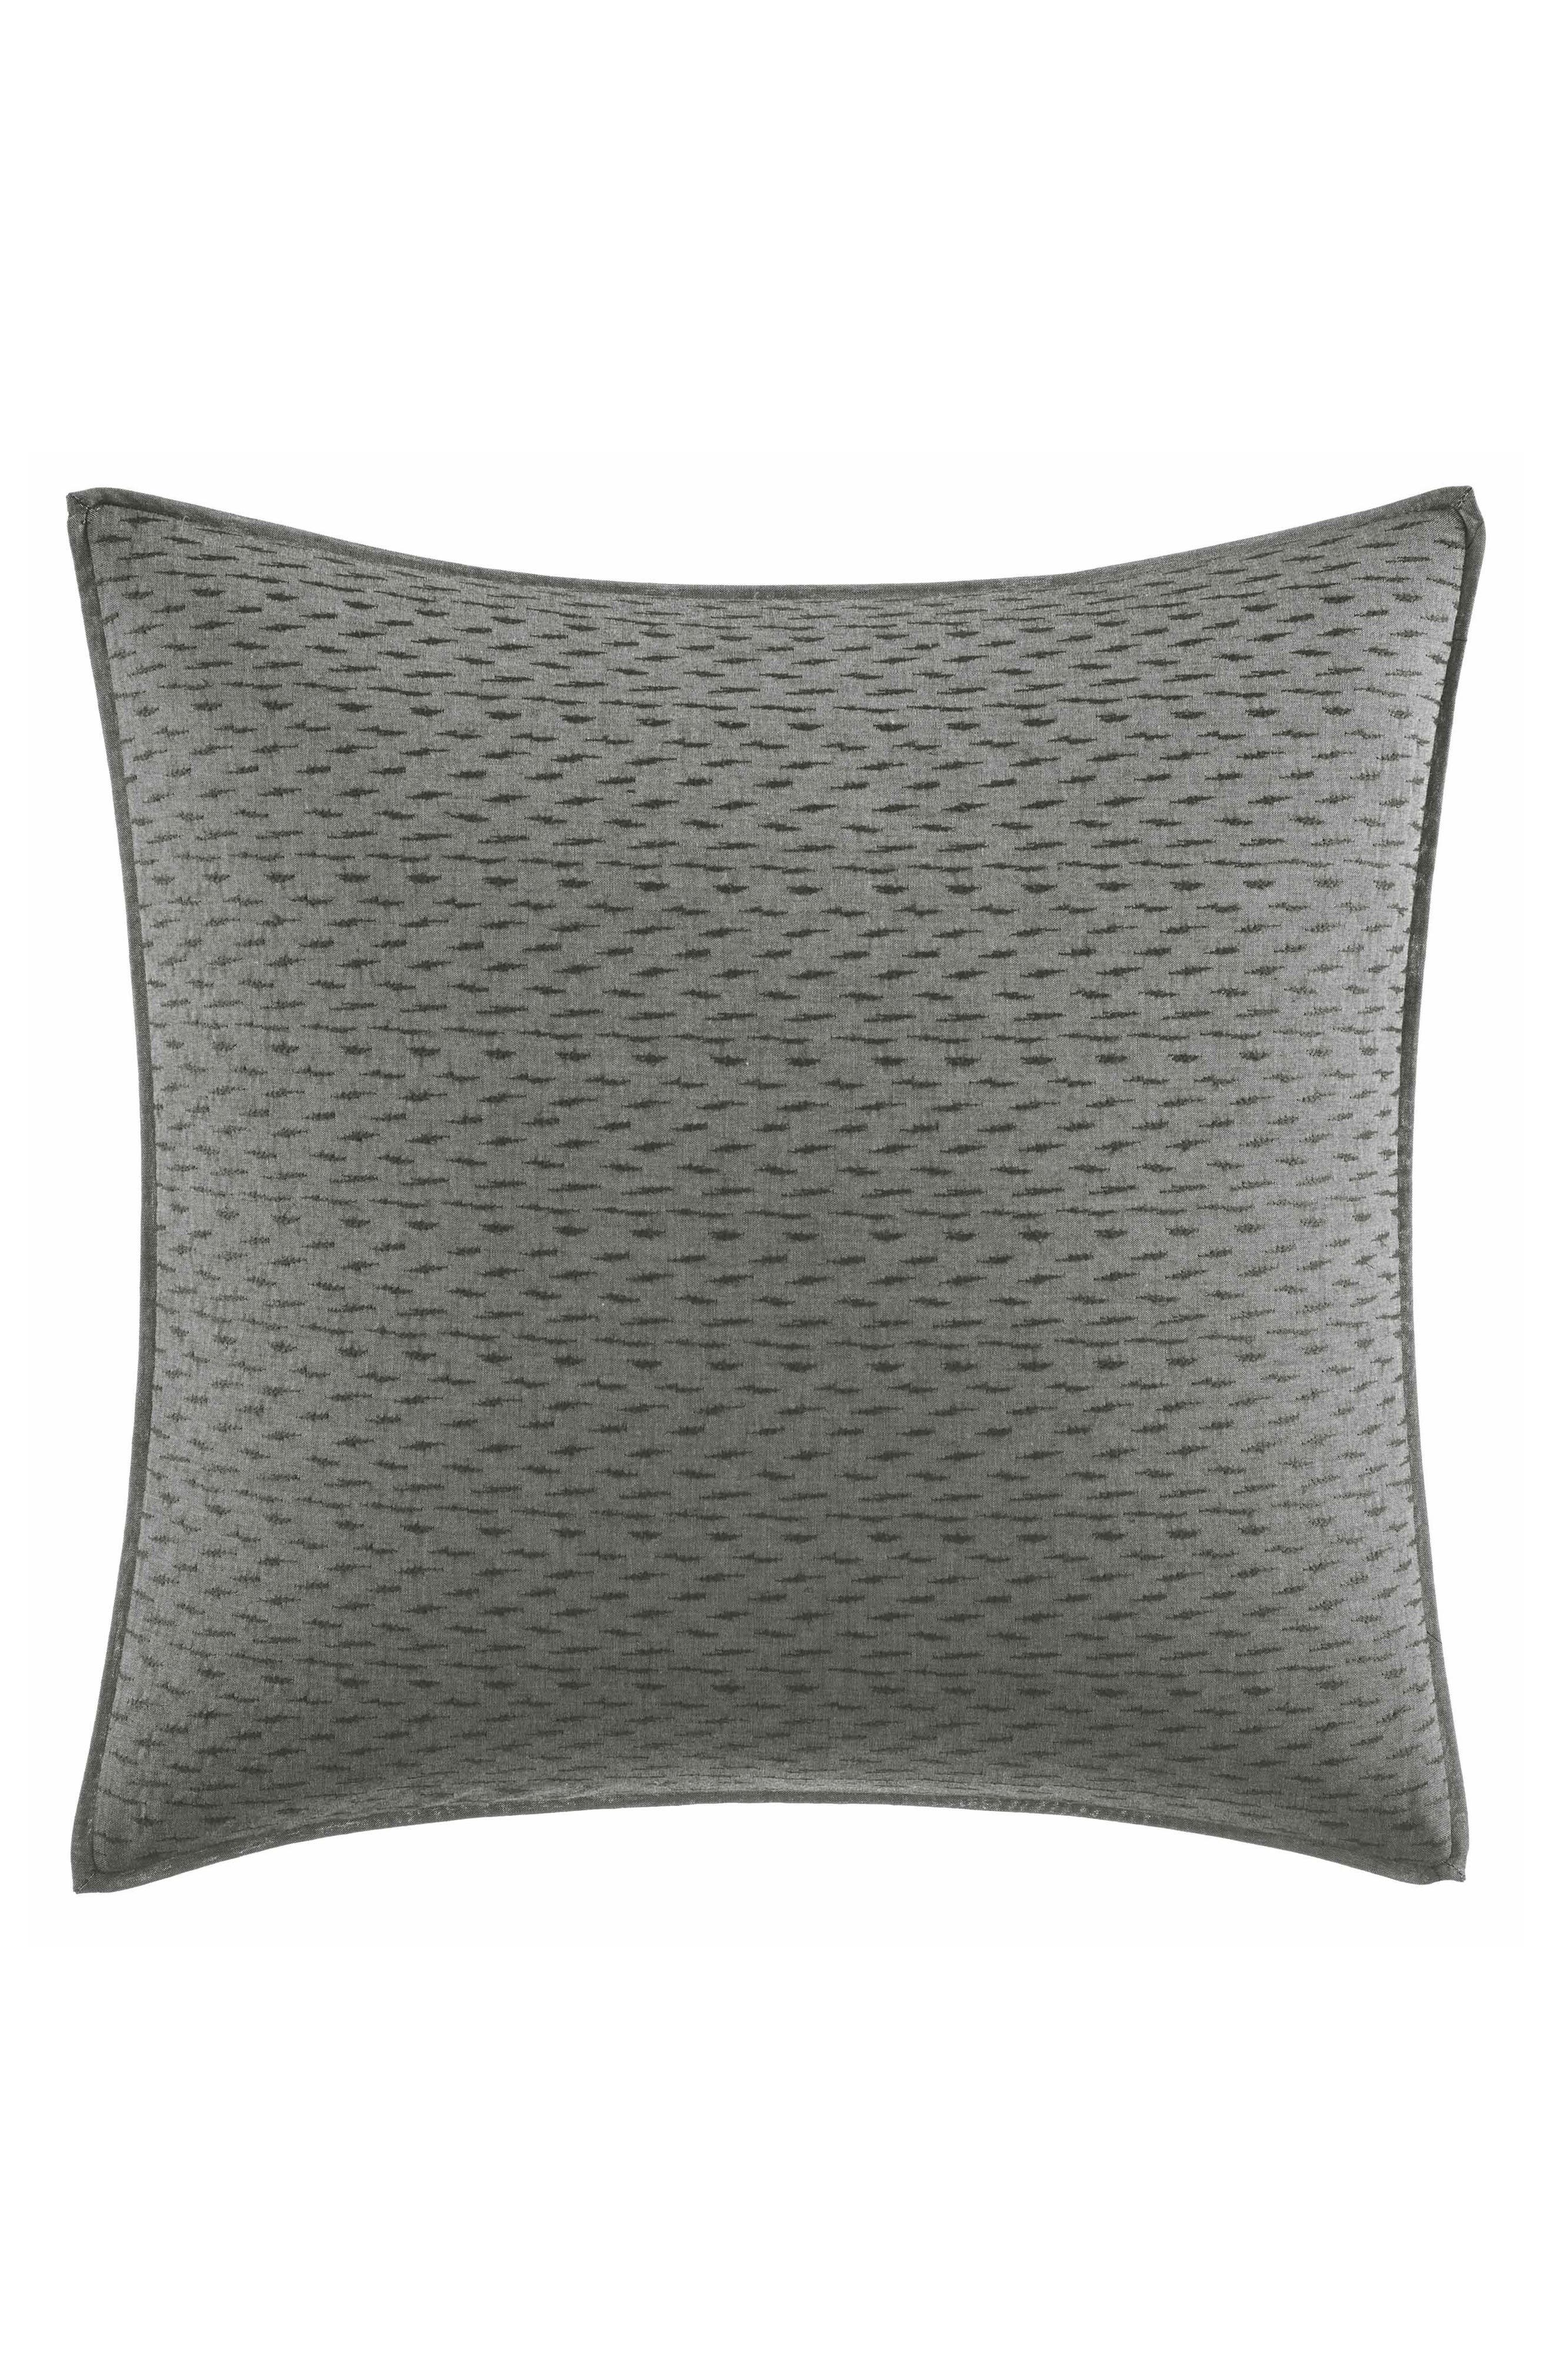 Vera Wang Charcoal Floral Accent Pillow